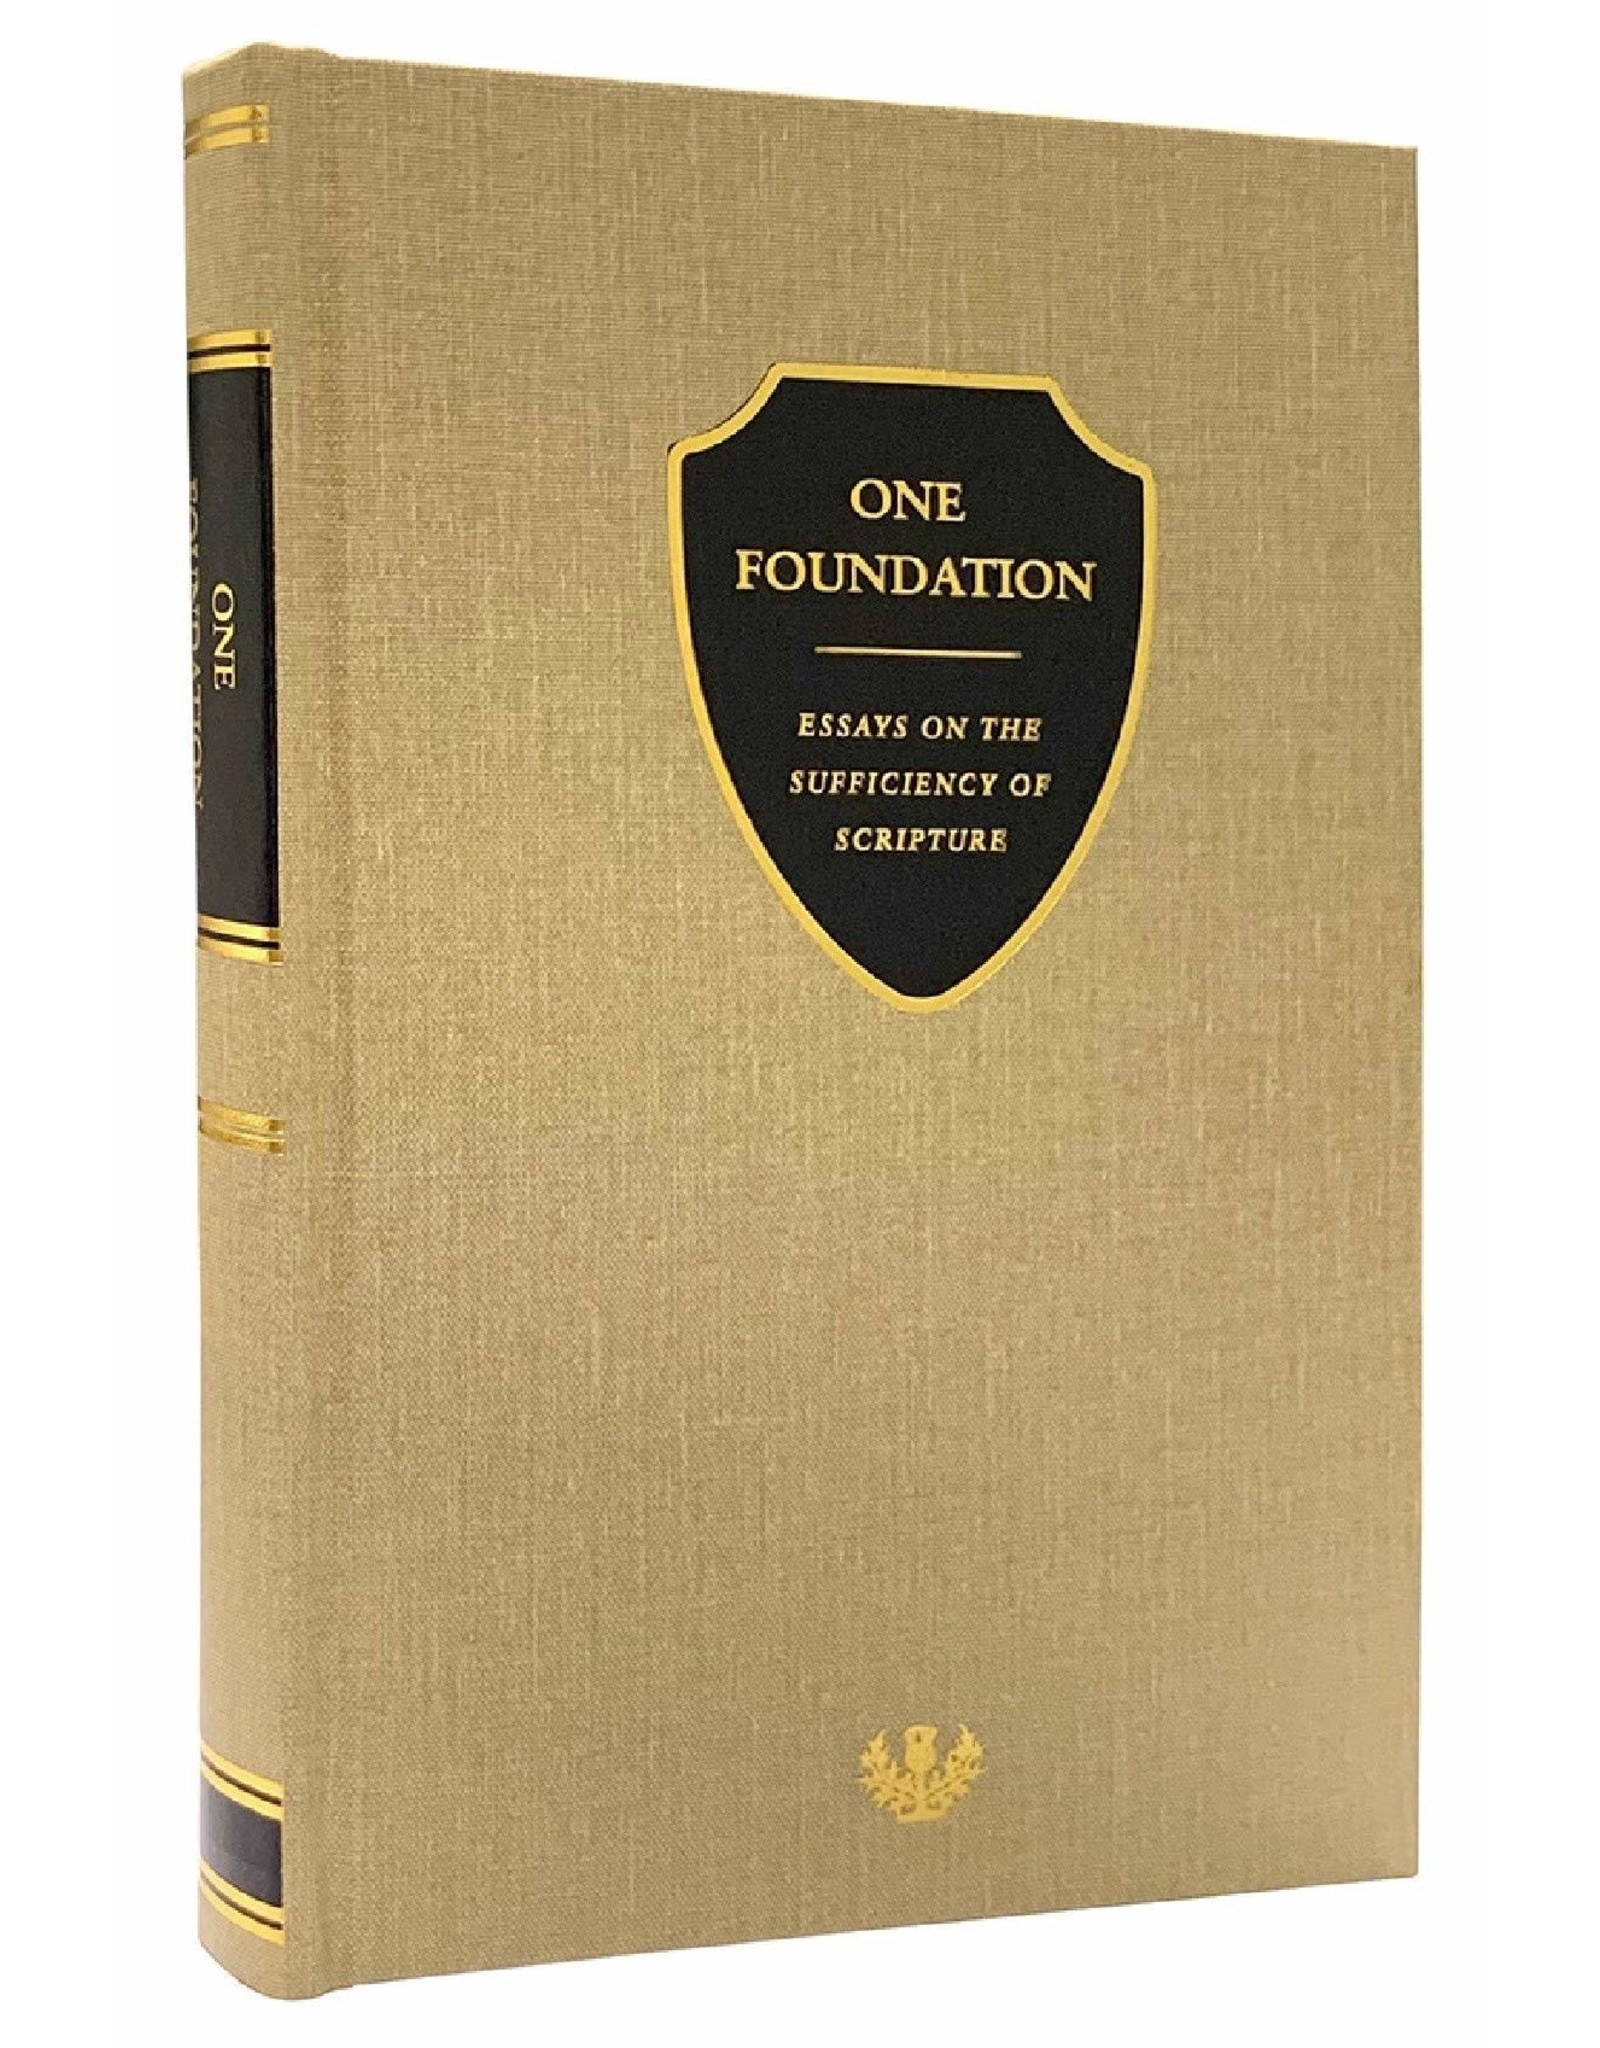 Grace to You (GTY) One Foundation: Essays on the Sufficiency of Scripture